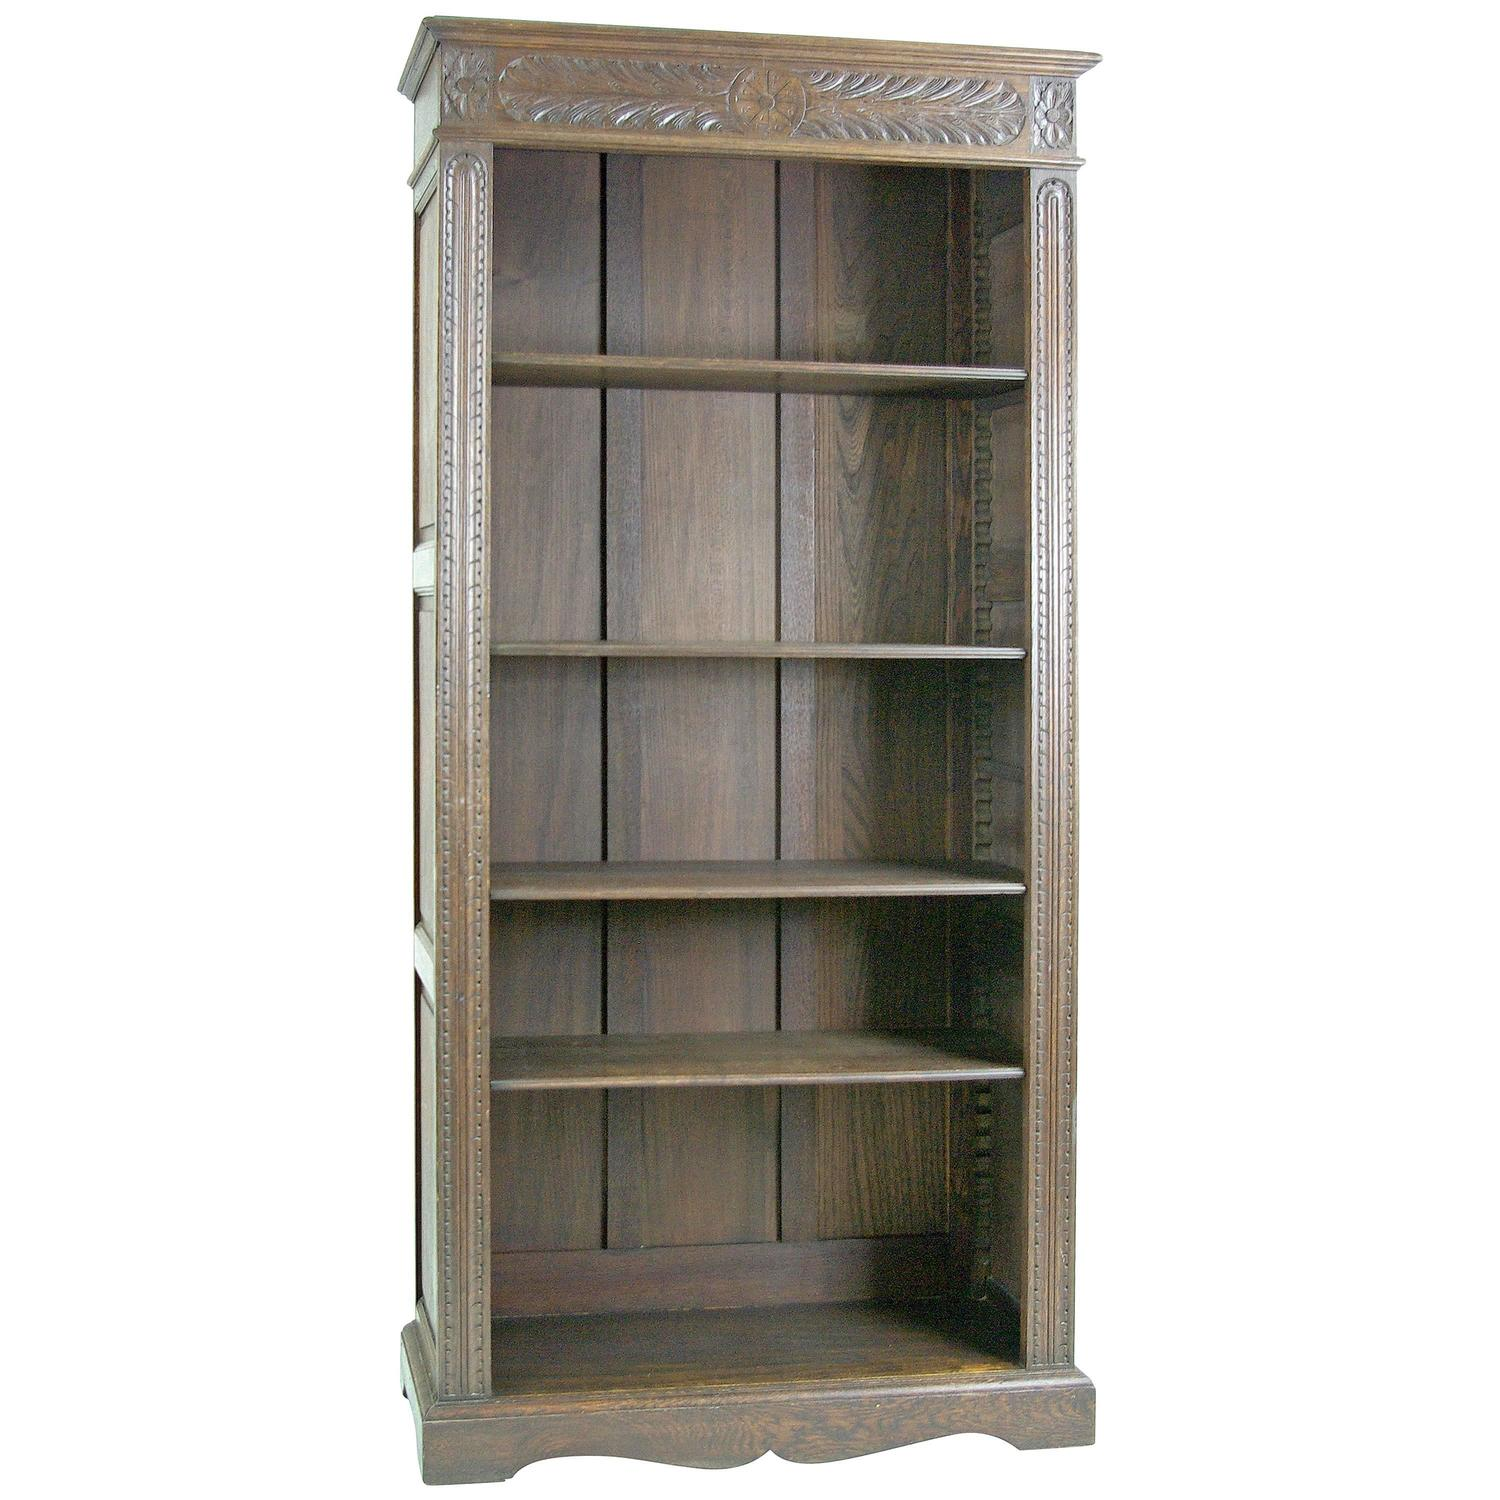 antique scottish victorian tall heavily carved oak bookcase bookshelf for sale at 1stdibs